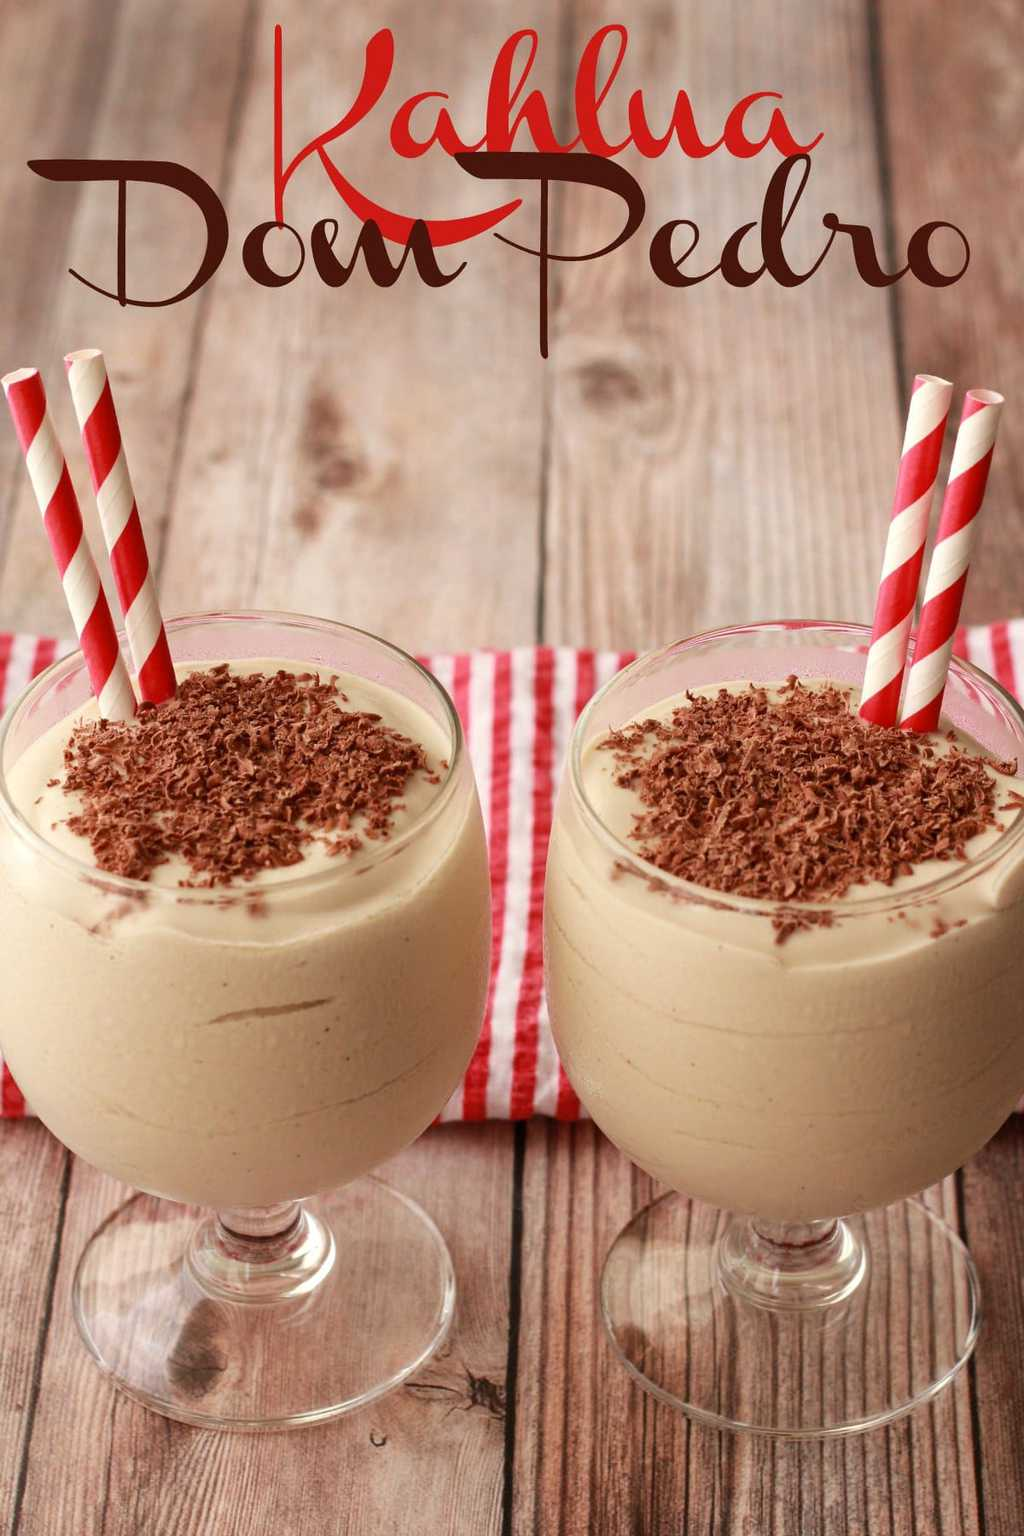 Vegan Kahlua Milkshake, also known as a Kahlua Dom Pedro. Double-thick, ultra-creamy, fabulously boozy, this is the perfect way to end off a celebratory meal! #vegan #lovingitvegan #dompedro #kahlua #milkshake #dairyfree #dessert